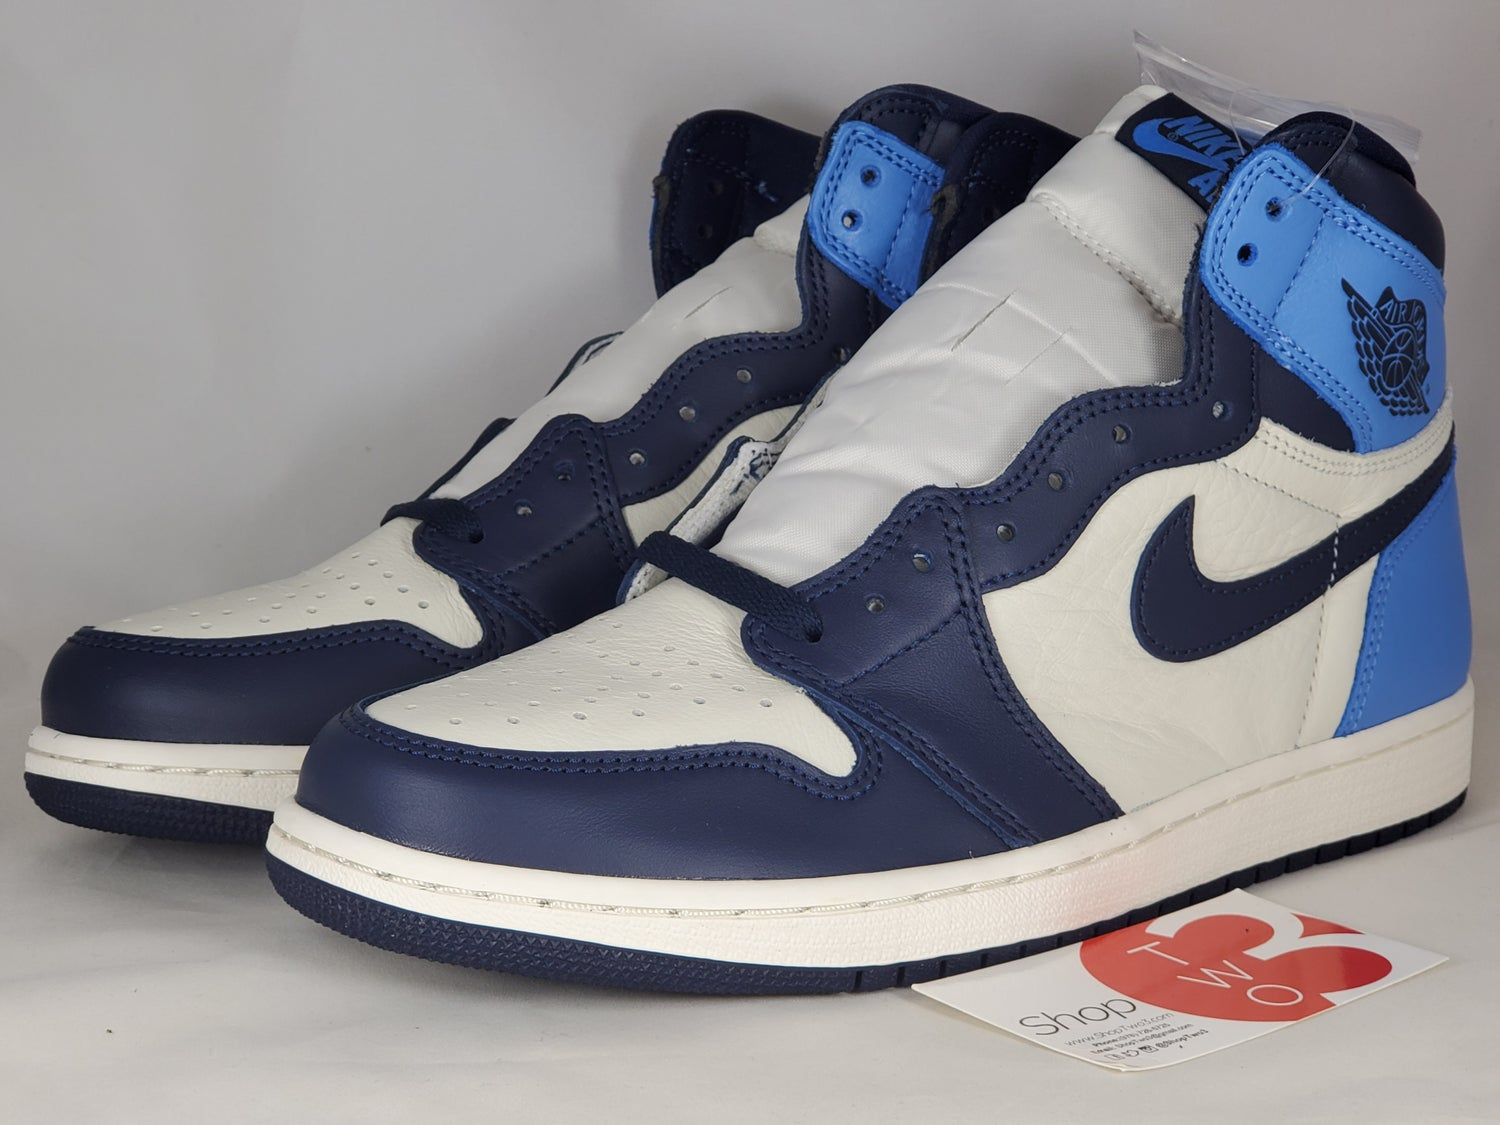 Image of Air Jordan 1 Retro Obsidian